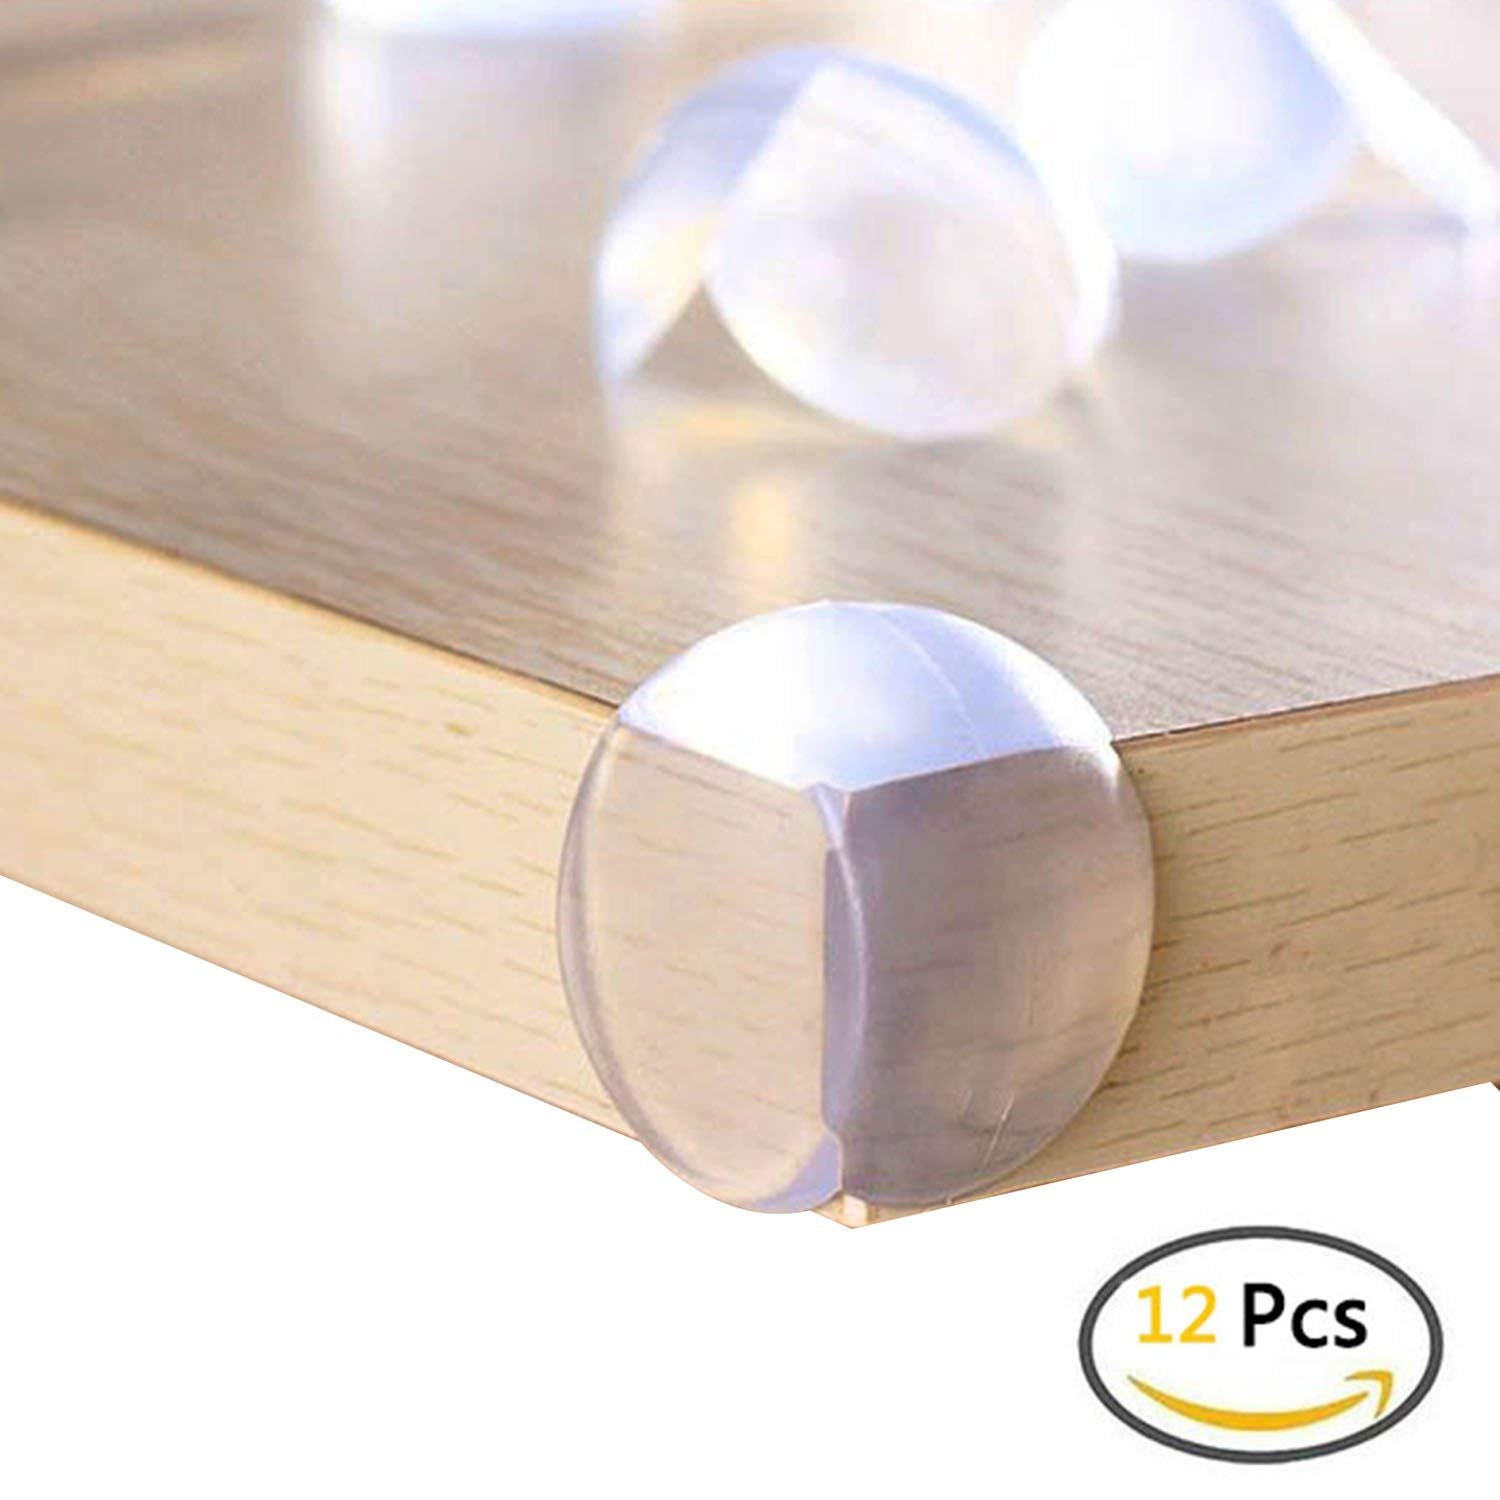 Baby Proofing Furniture Corner Bumpers 20 Pack Lesfit Clear Soft Baby Safety Corner Protector Baby Corner Guards